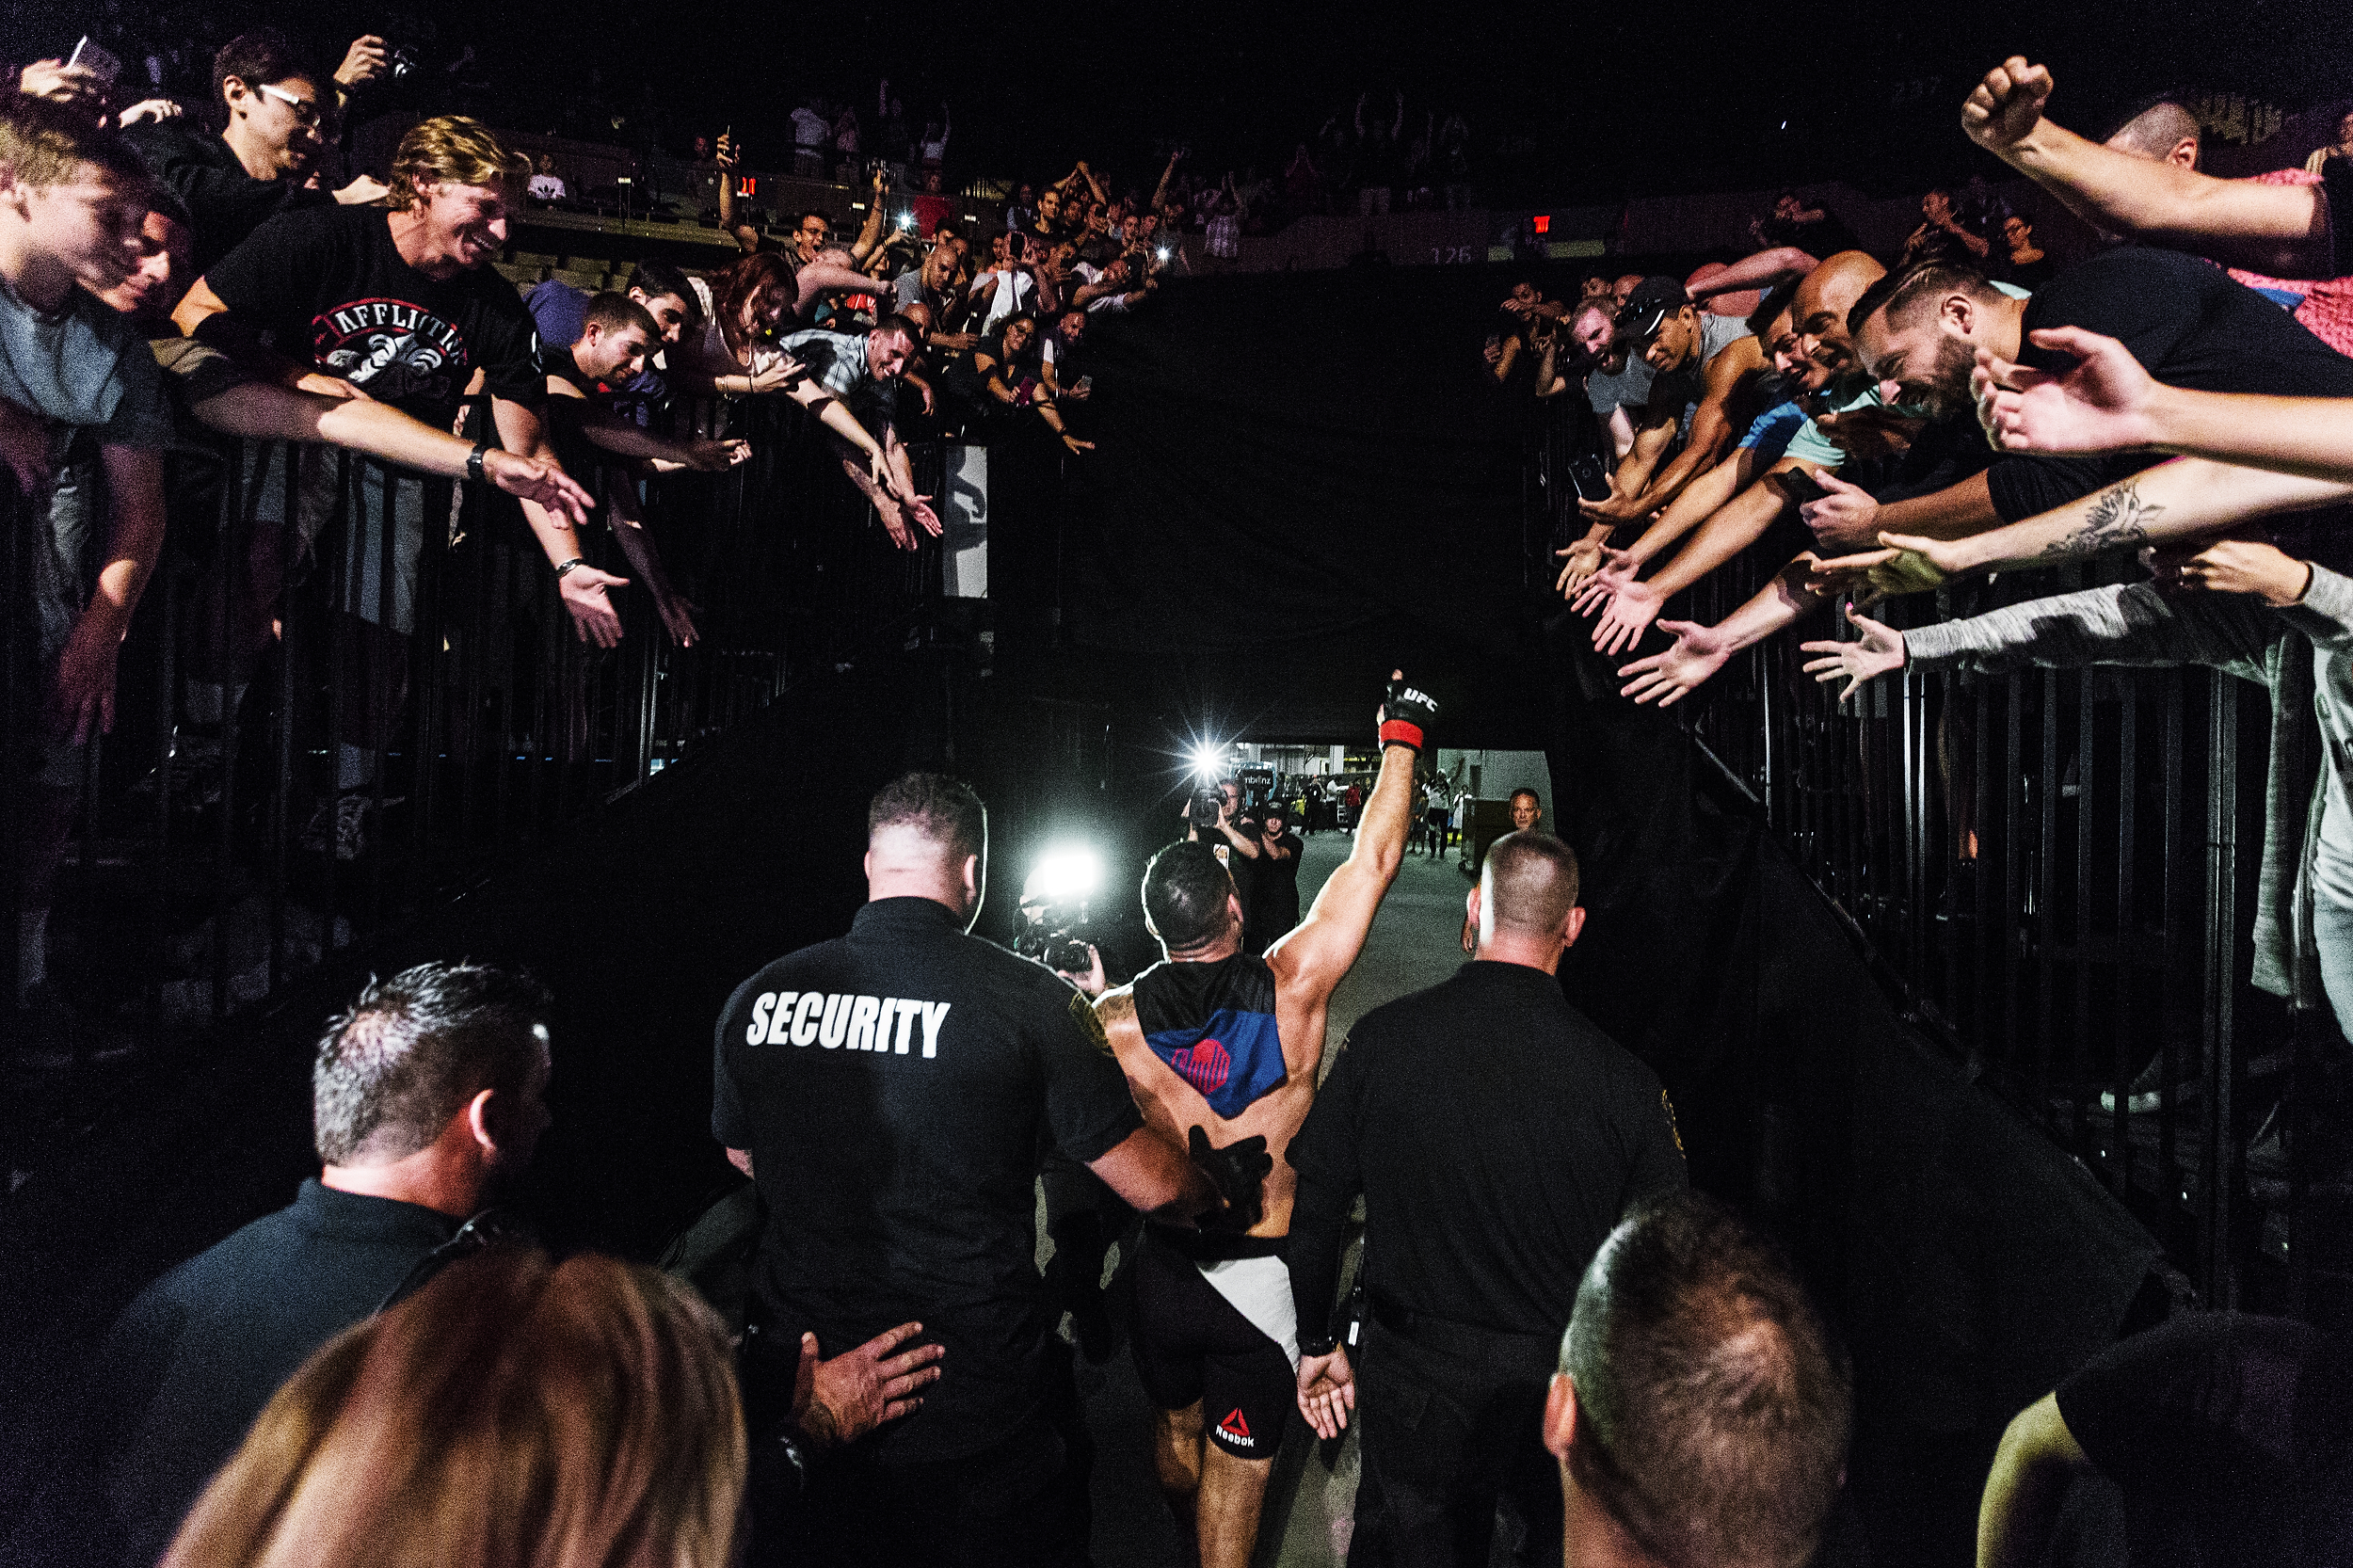 UFC Fighter Chris Weidman leaves the arena after defeating Kelvin Gastelum by third round submission in the UFC Fight Night Long Island main event in his hometown at Nassau Veterans Memorial Coliseumon July 22, 2017 in Uniondale, N.Y. (Photo by Bryan Bennett/The Players' Tribune)